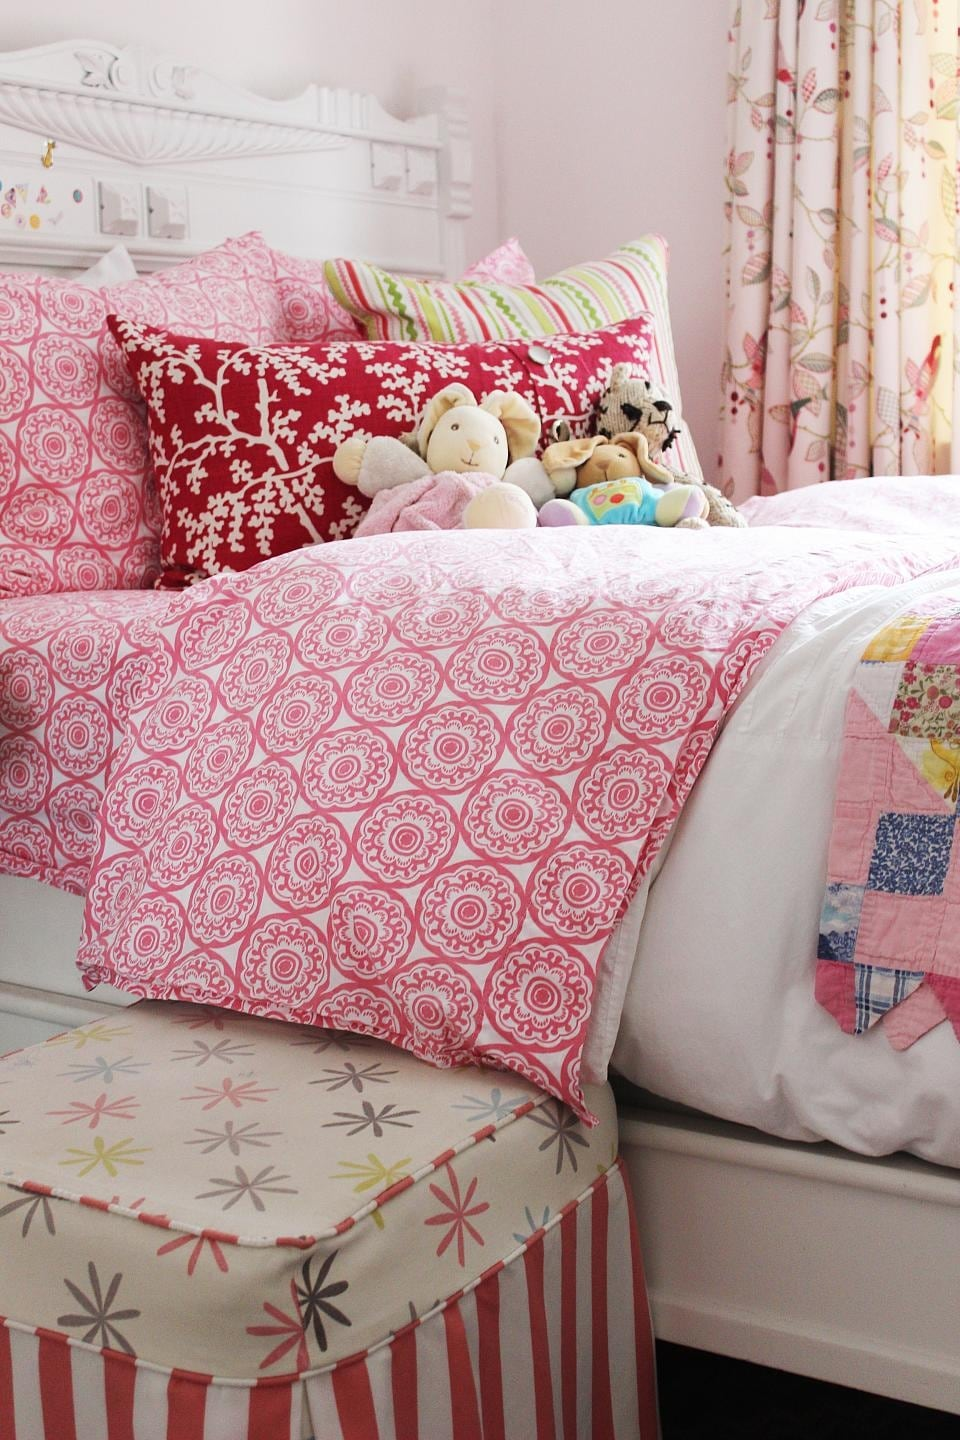 Sophie's Bed with patterned pink comforter and Pillows